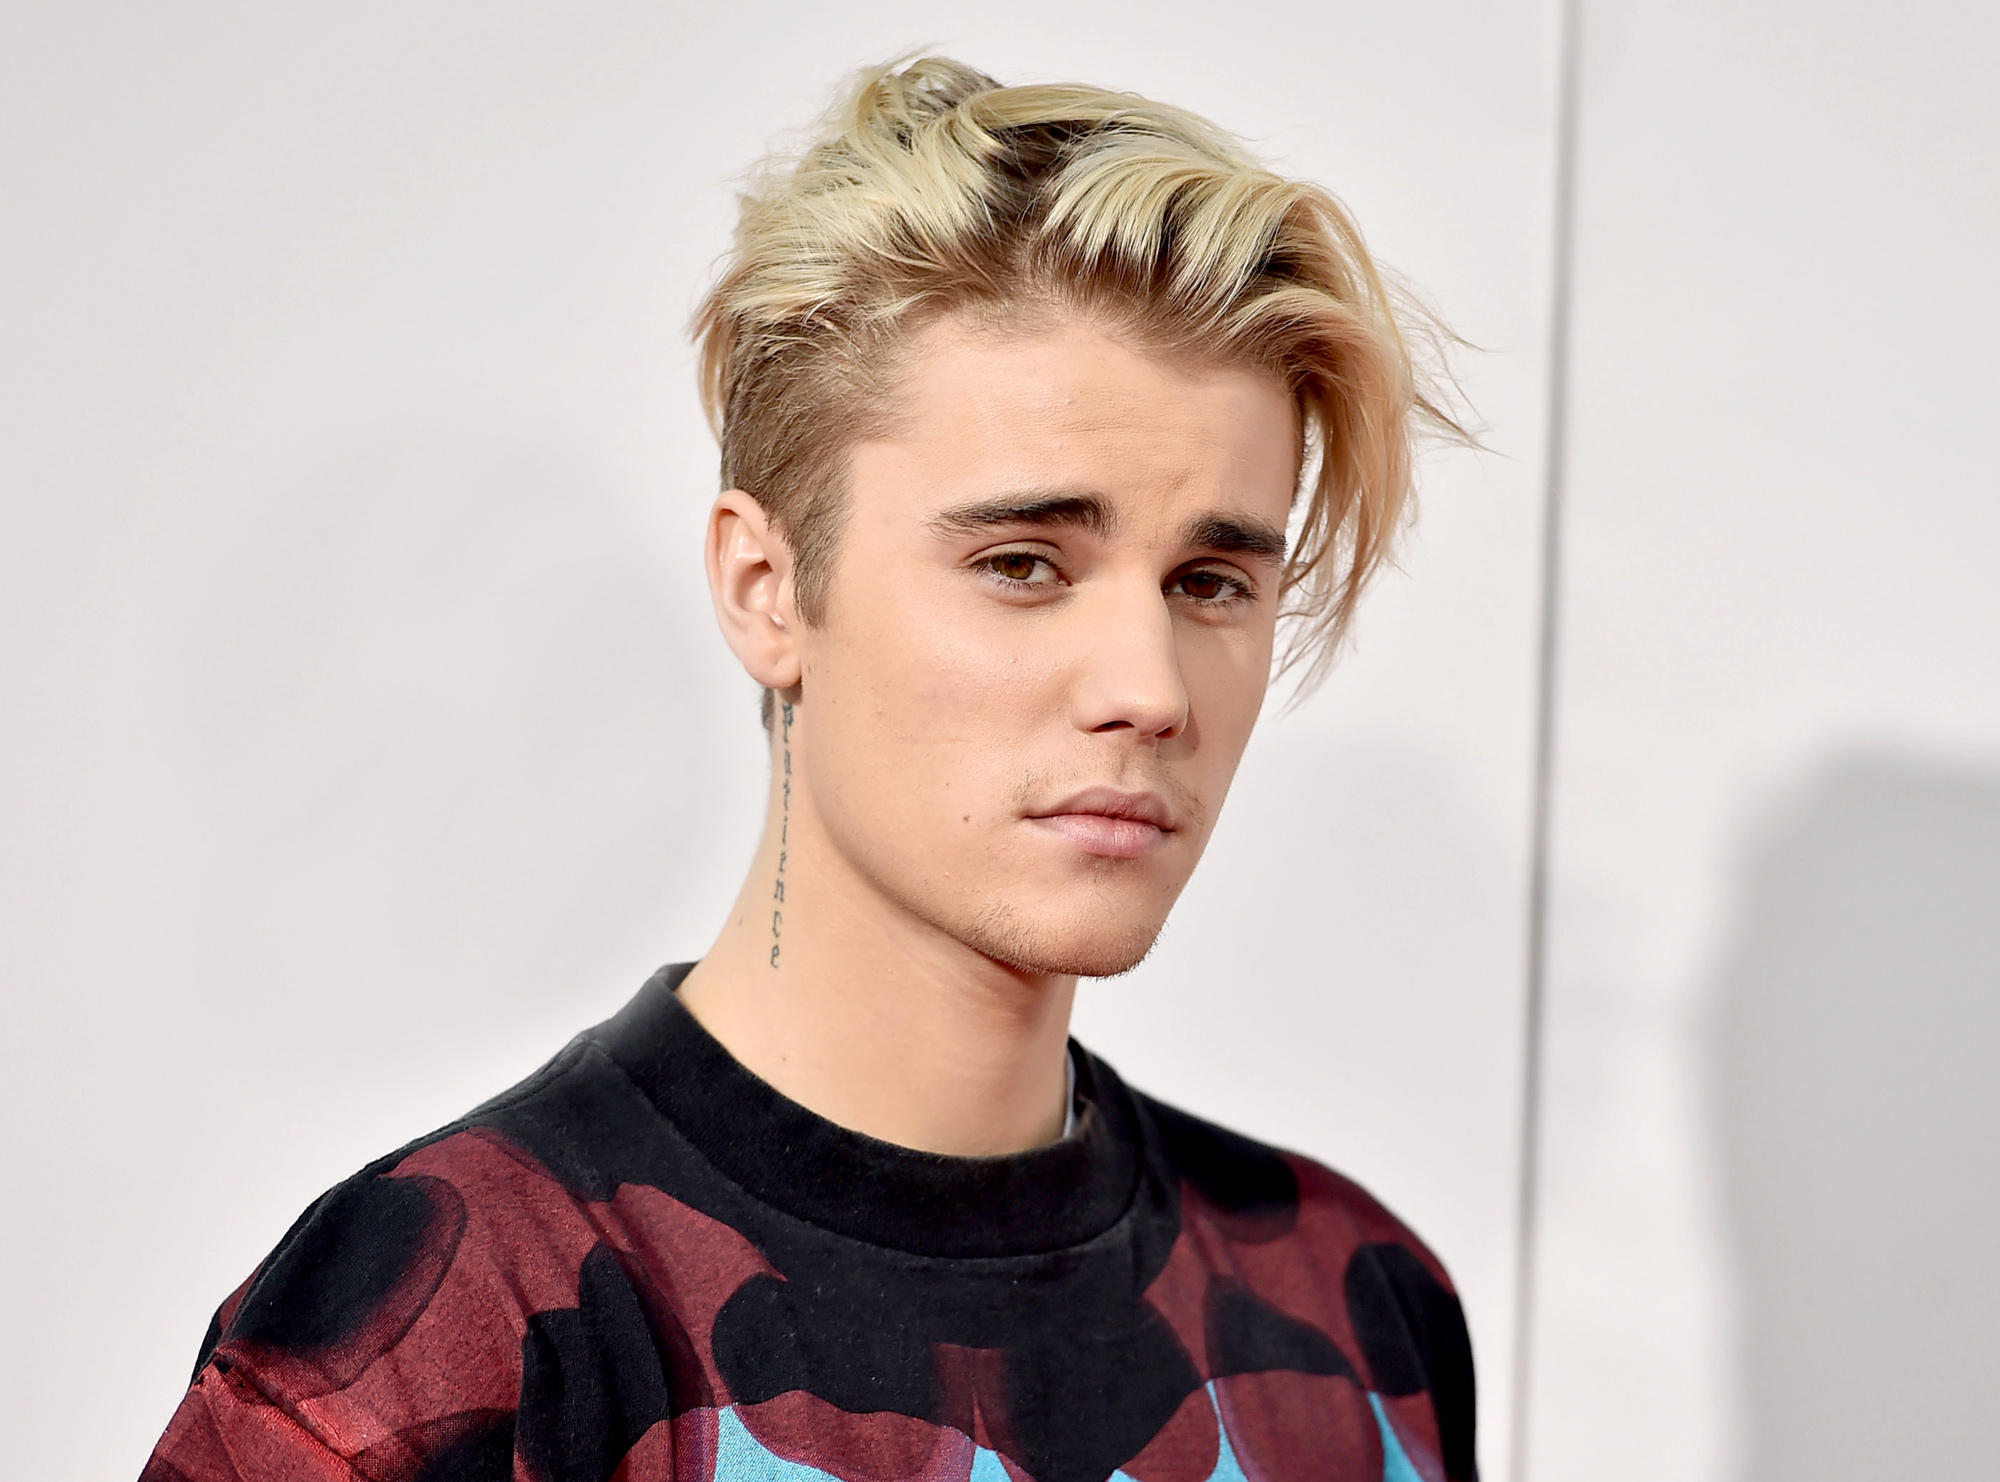 Justin Bieber InStylecom - Justin bieber hairstyle right now